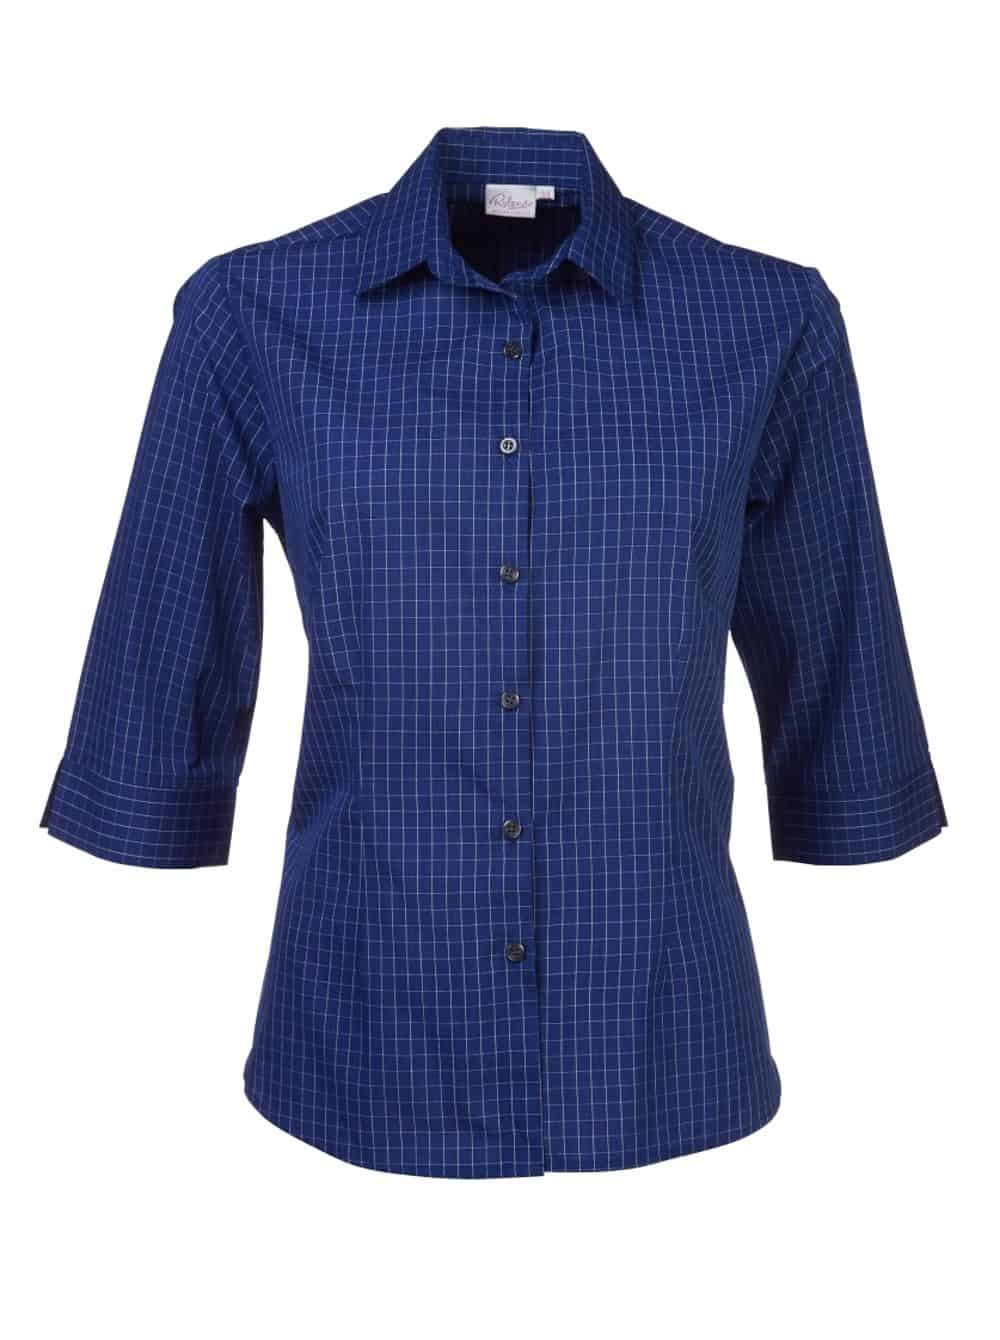 3/4 P04 Cathy Blouse Lounge Shirts and Blouses